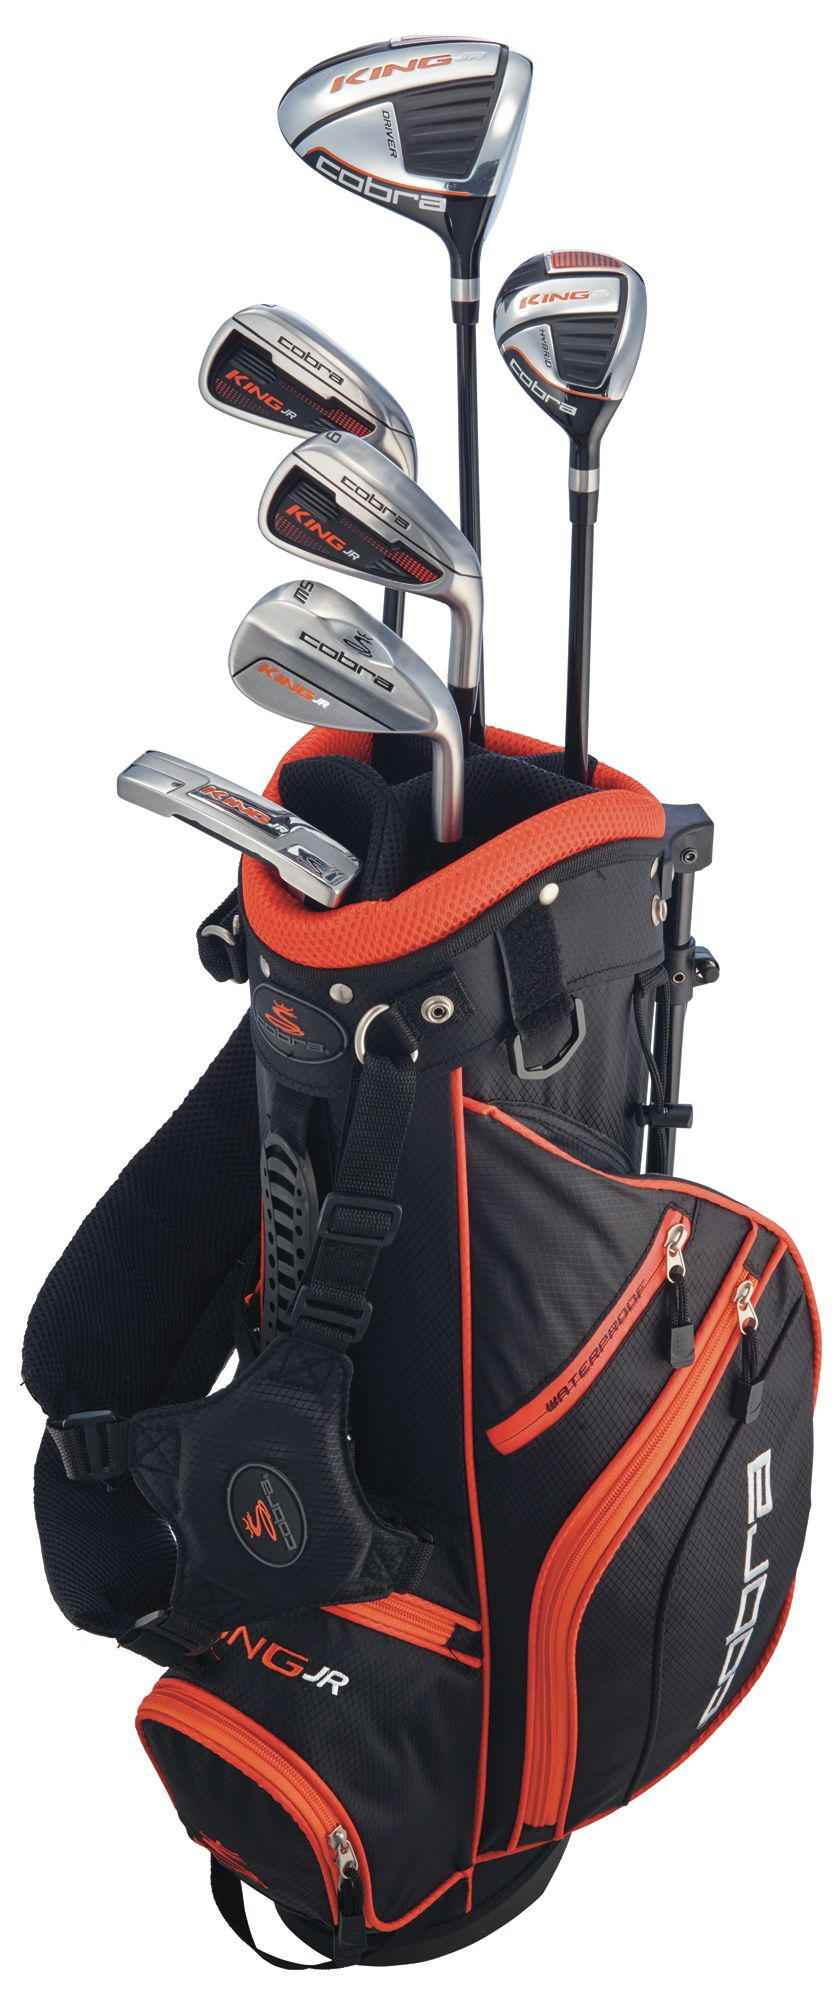 Kids Golf Club Sets-Cobra King Golf Club Set